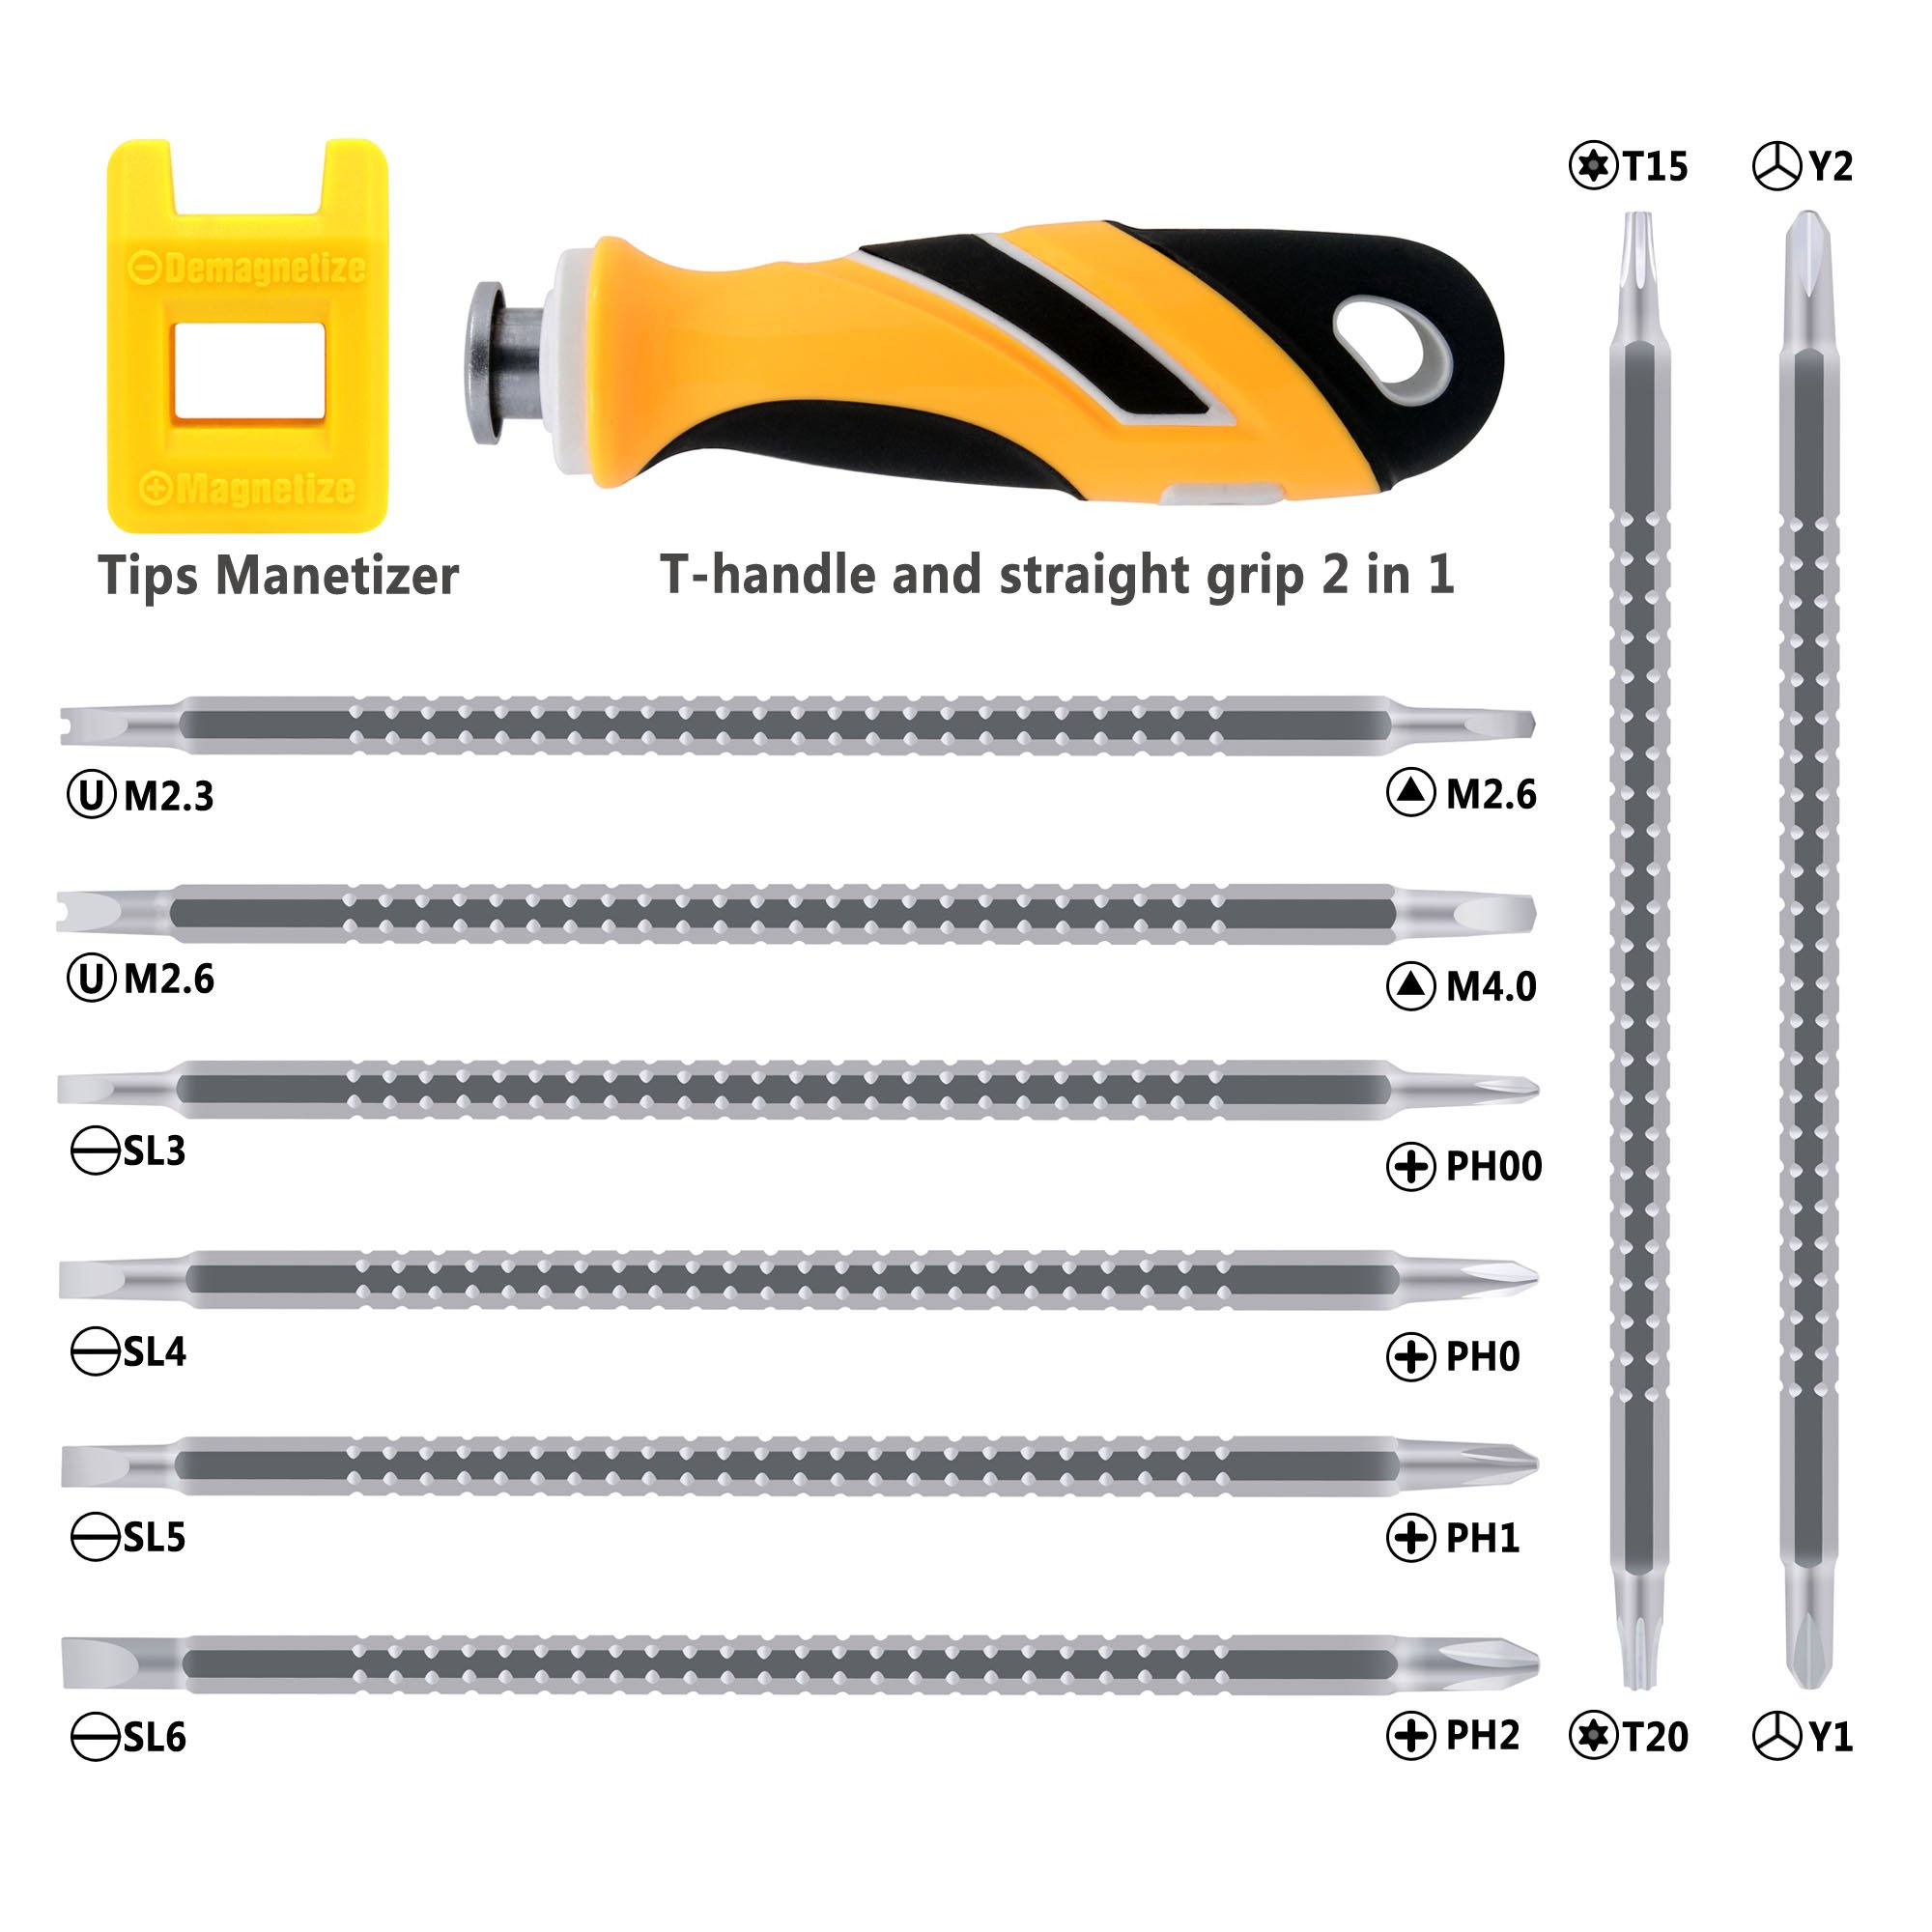 Koopi 16 in 1 Multi Bits Screwdriver Set Ergonomic TPR Grip With Long Phillips Slotted Torx Tri-wing U-type Triangle Head Bits For Appliance Maintenance